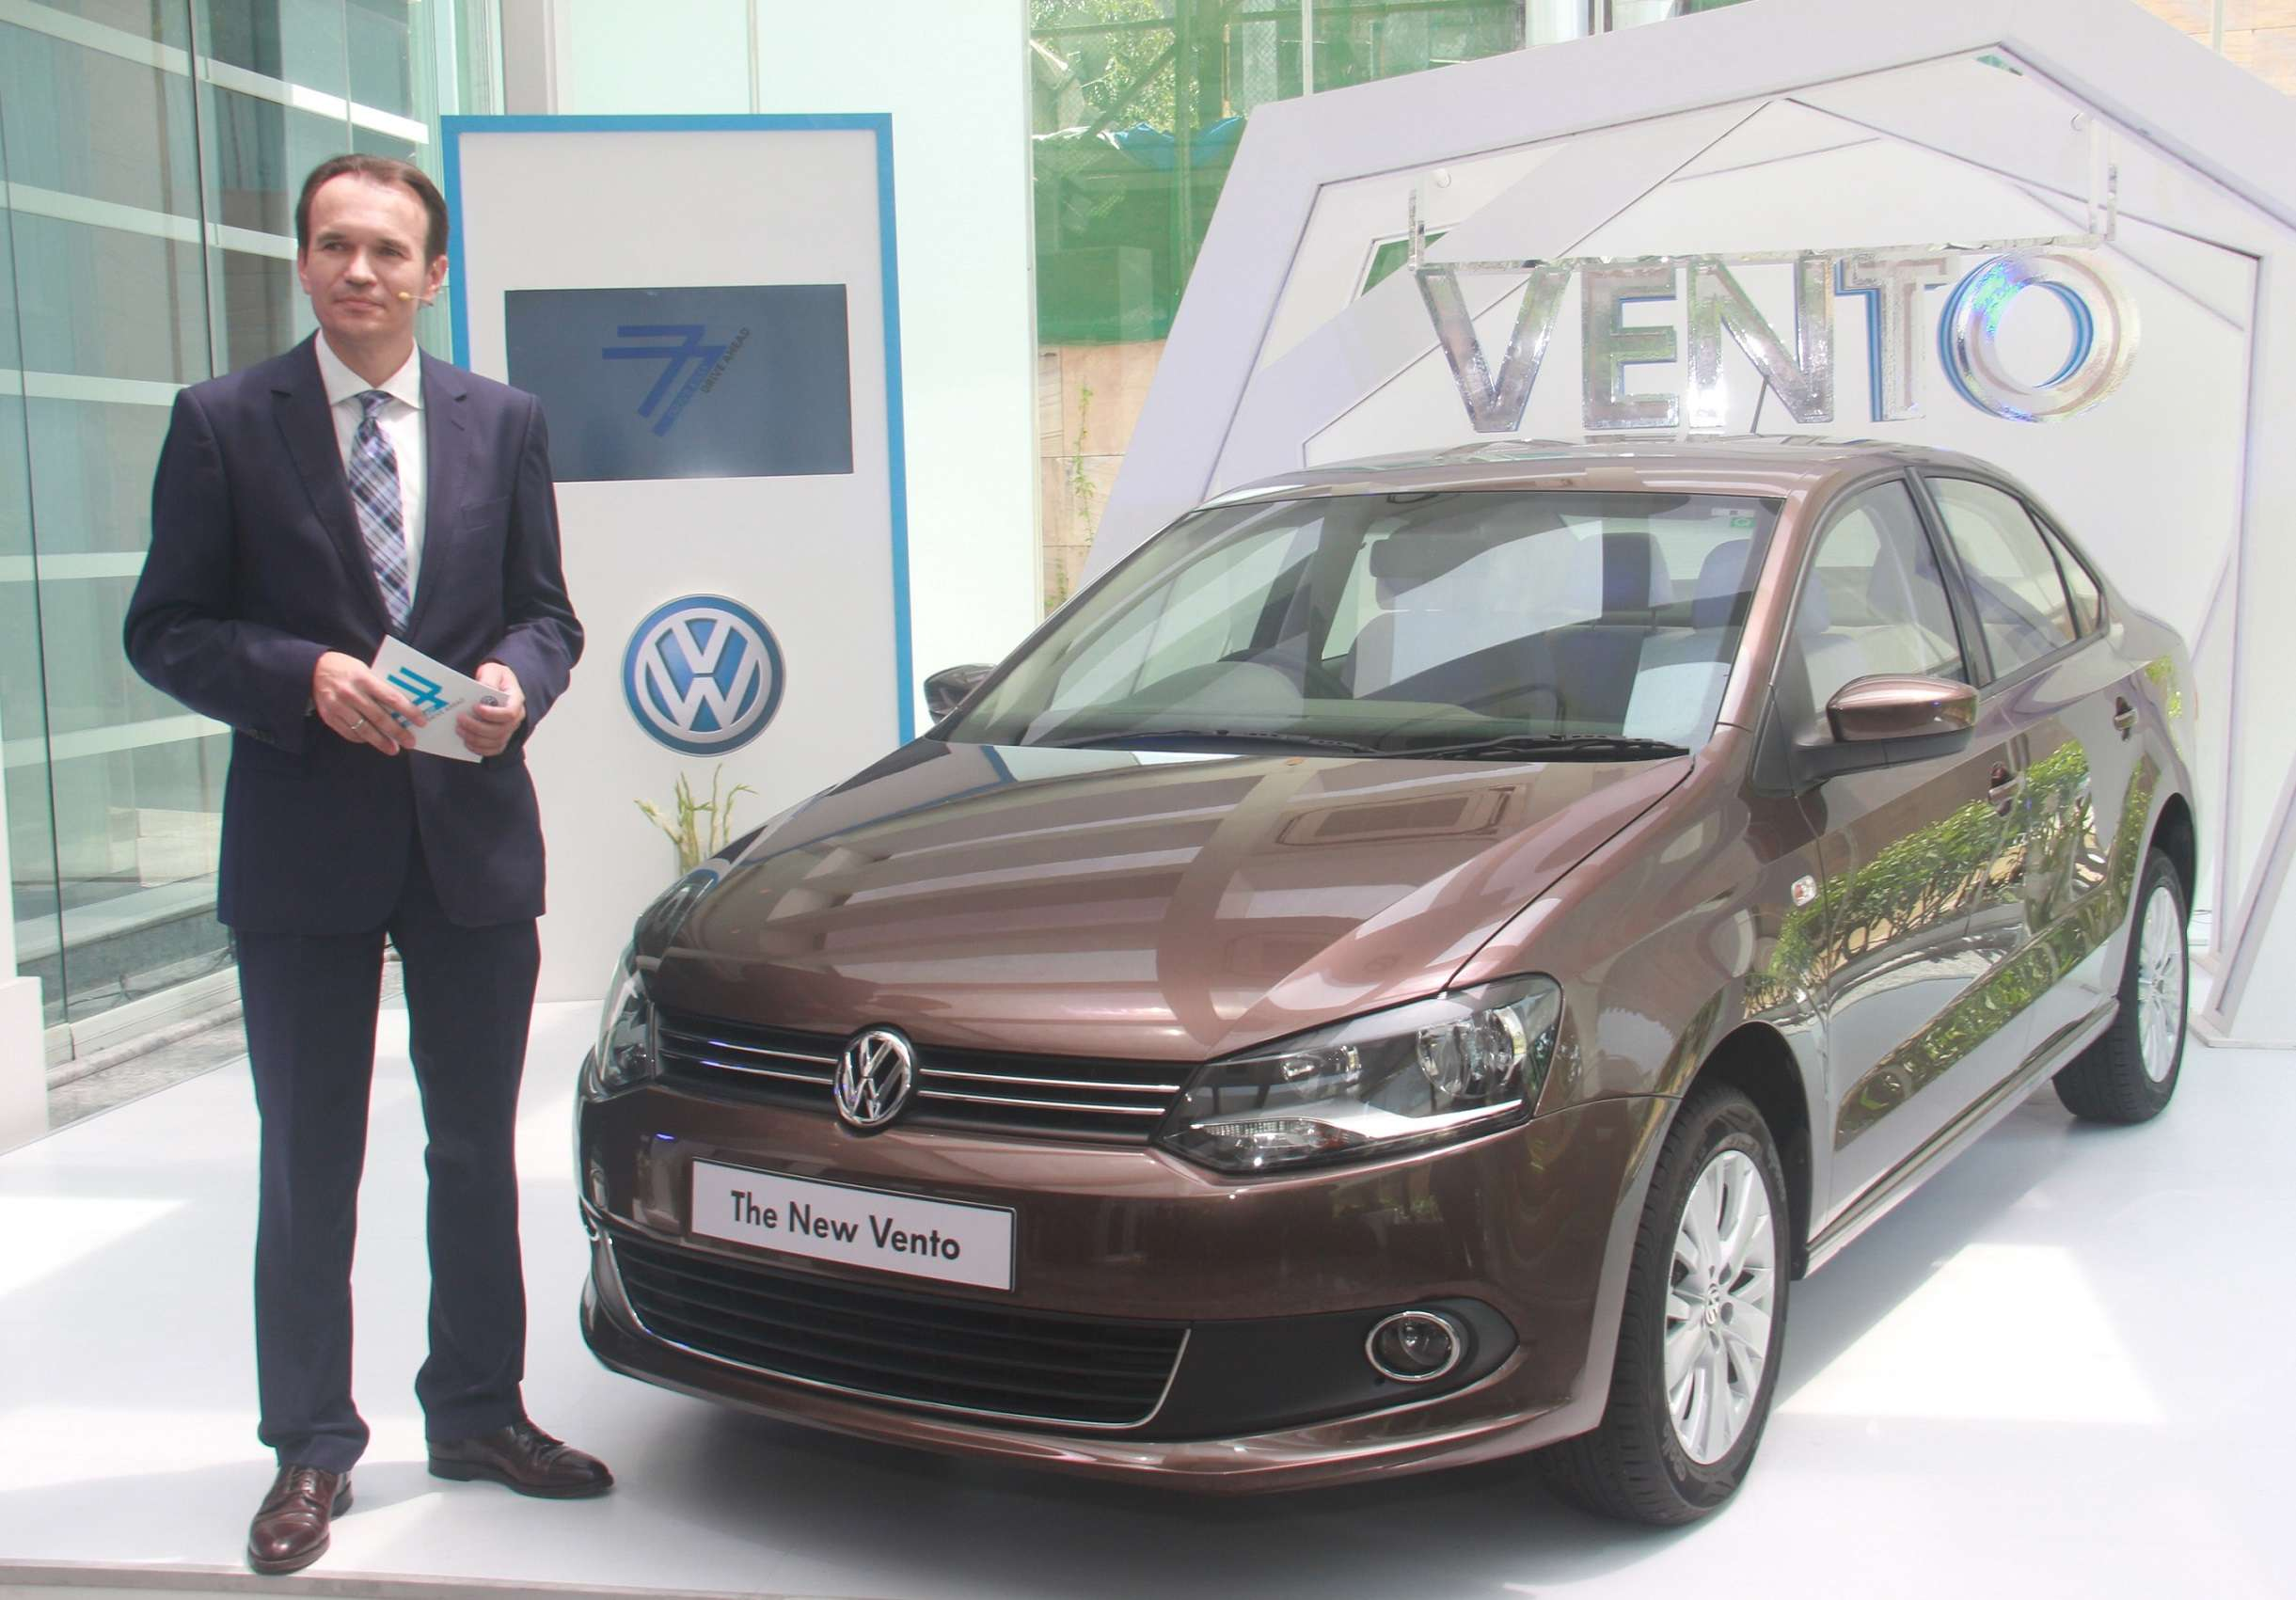 Vw Launches Vento 1 5 Tdi With 7 Speed Dsg Automatic At Rs 7 44 Lakh